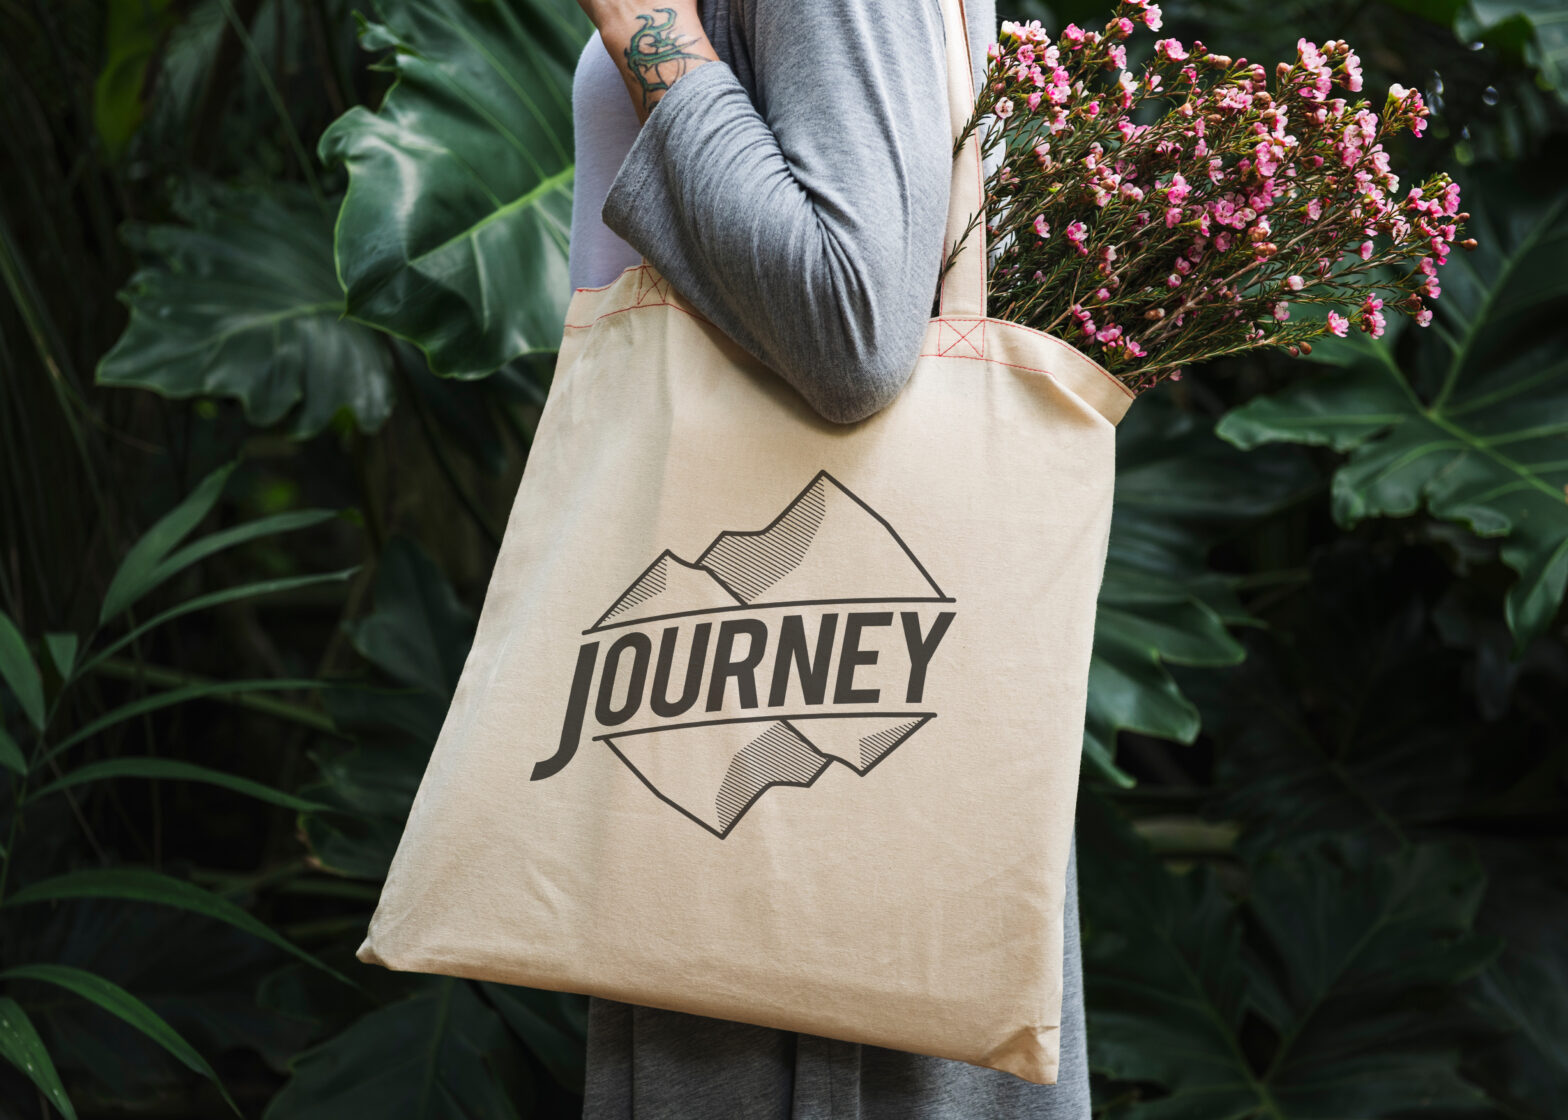 tote bags for giveaways